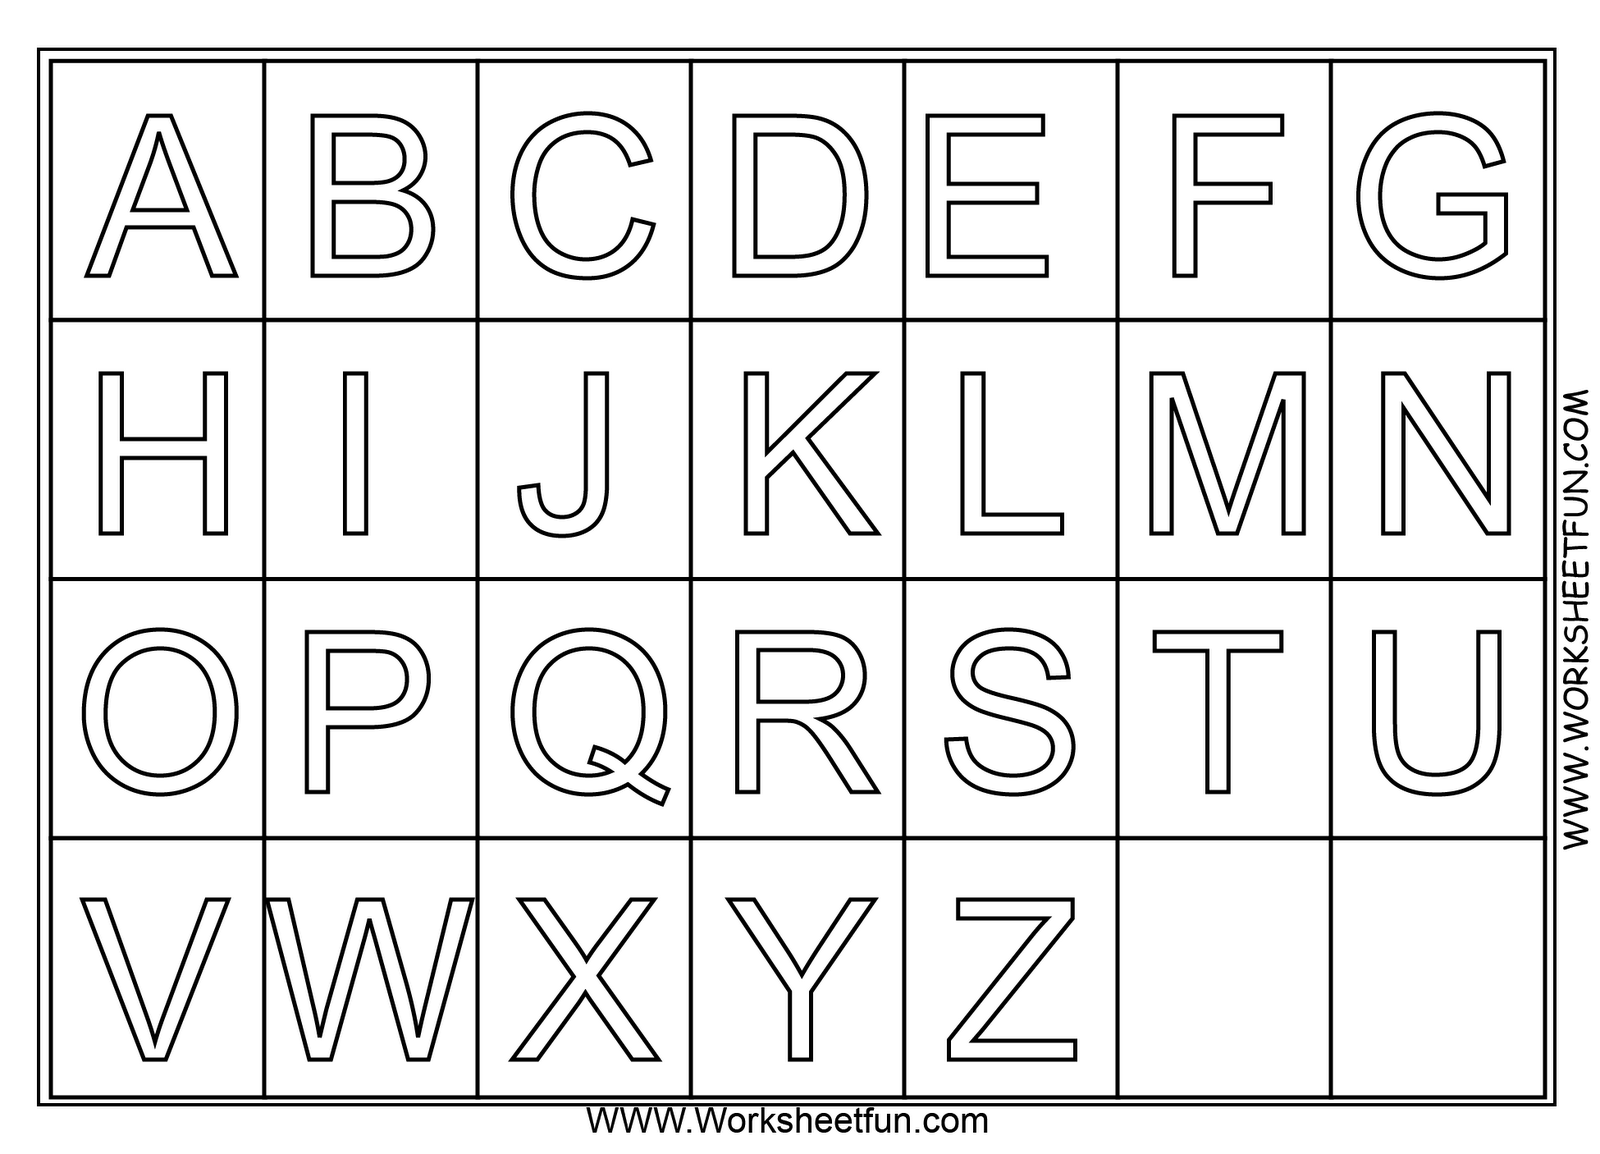 alphabet coloring pages download - photo#10